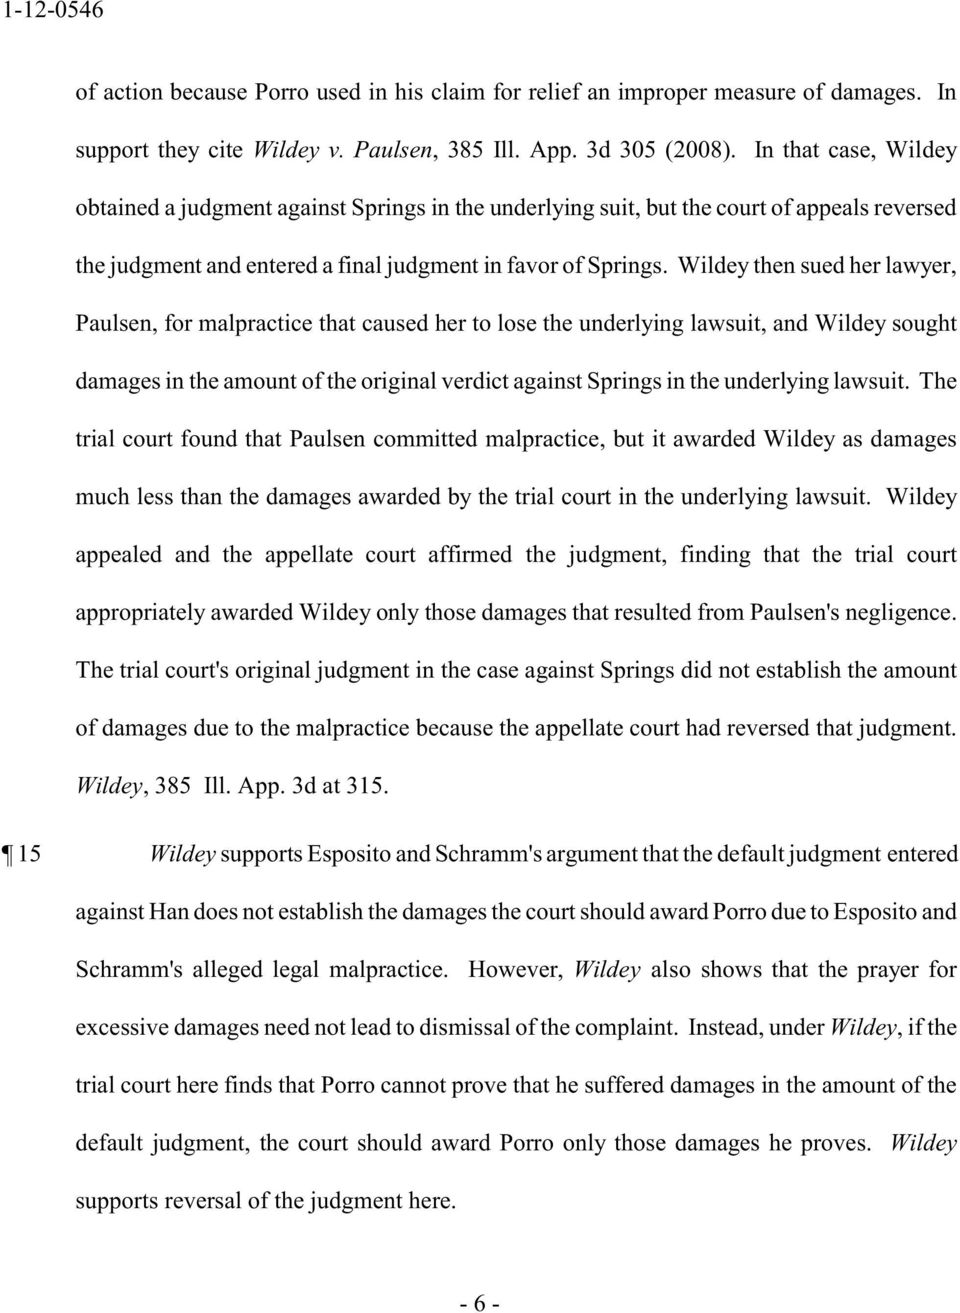 Wildey then sued her lawyer, Paulsen, for malpractice that caused her to lose the underlying lawsuit, and Wildey sought damages in the amount of the original verdict against Springs in the underlying